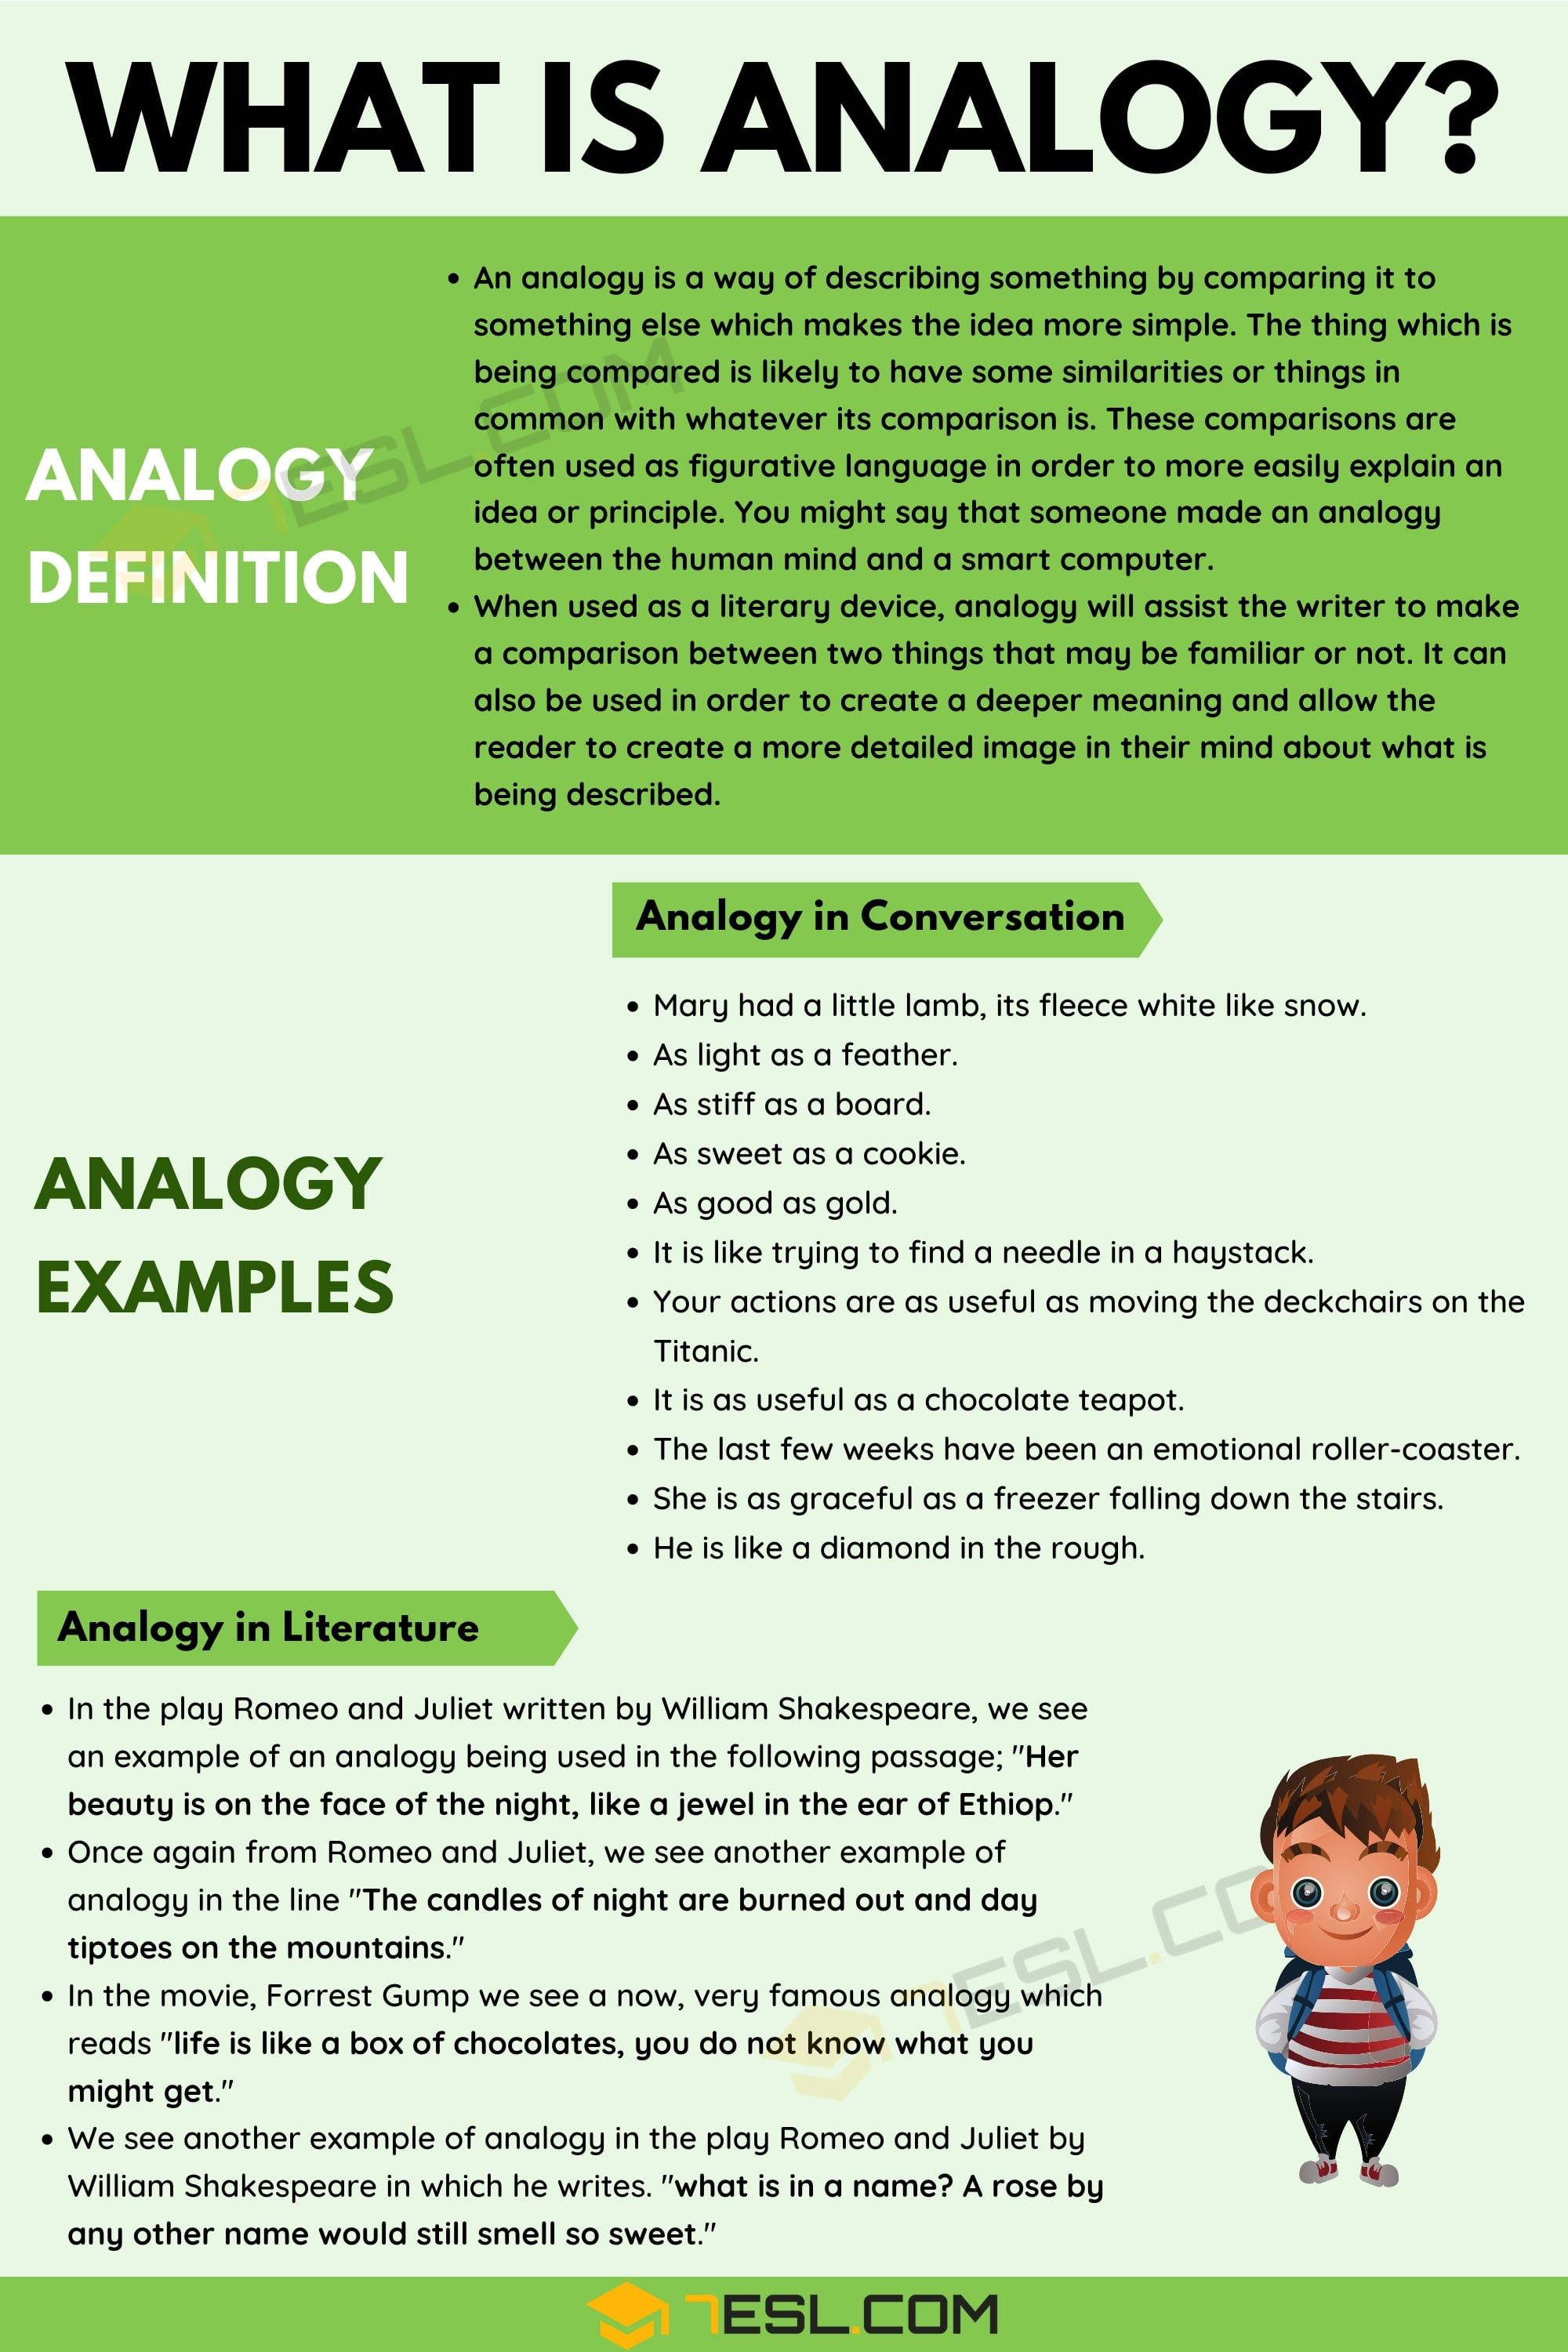 Analogy Definition And Examples Of Analogy In Conversation